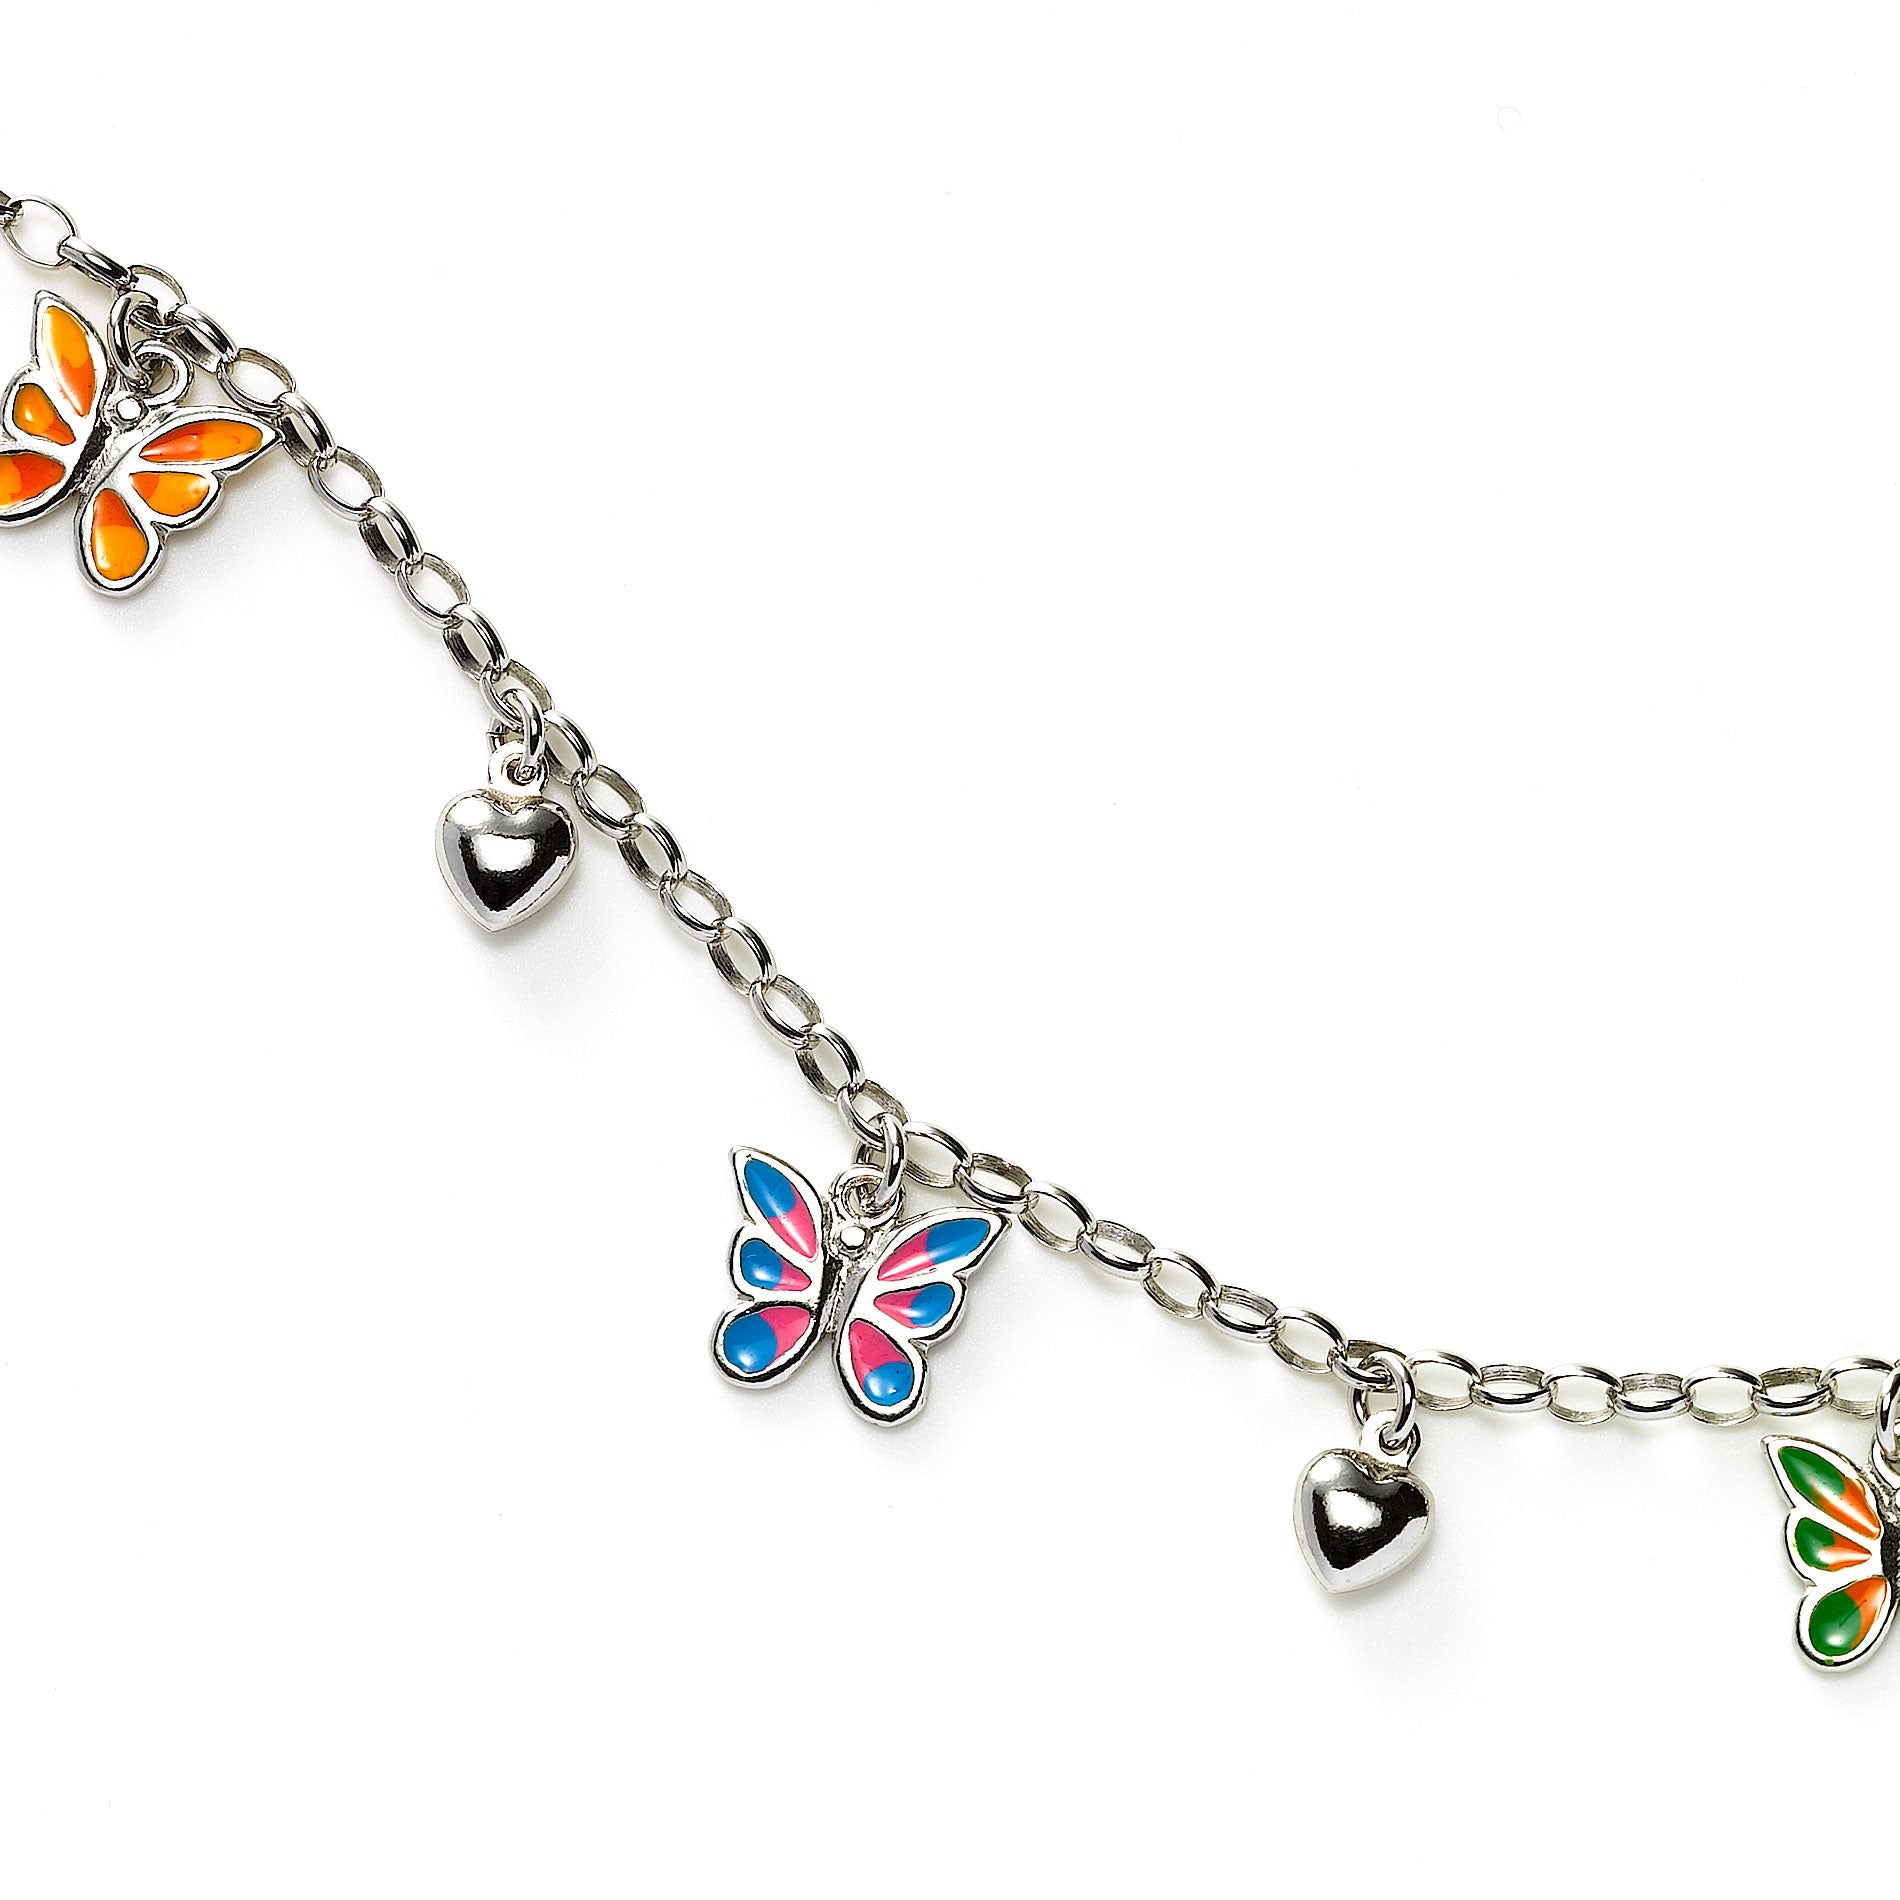 Butterfly and Heart Charm Bracelet, Sterling Silver